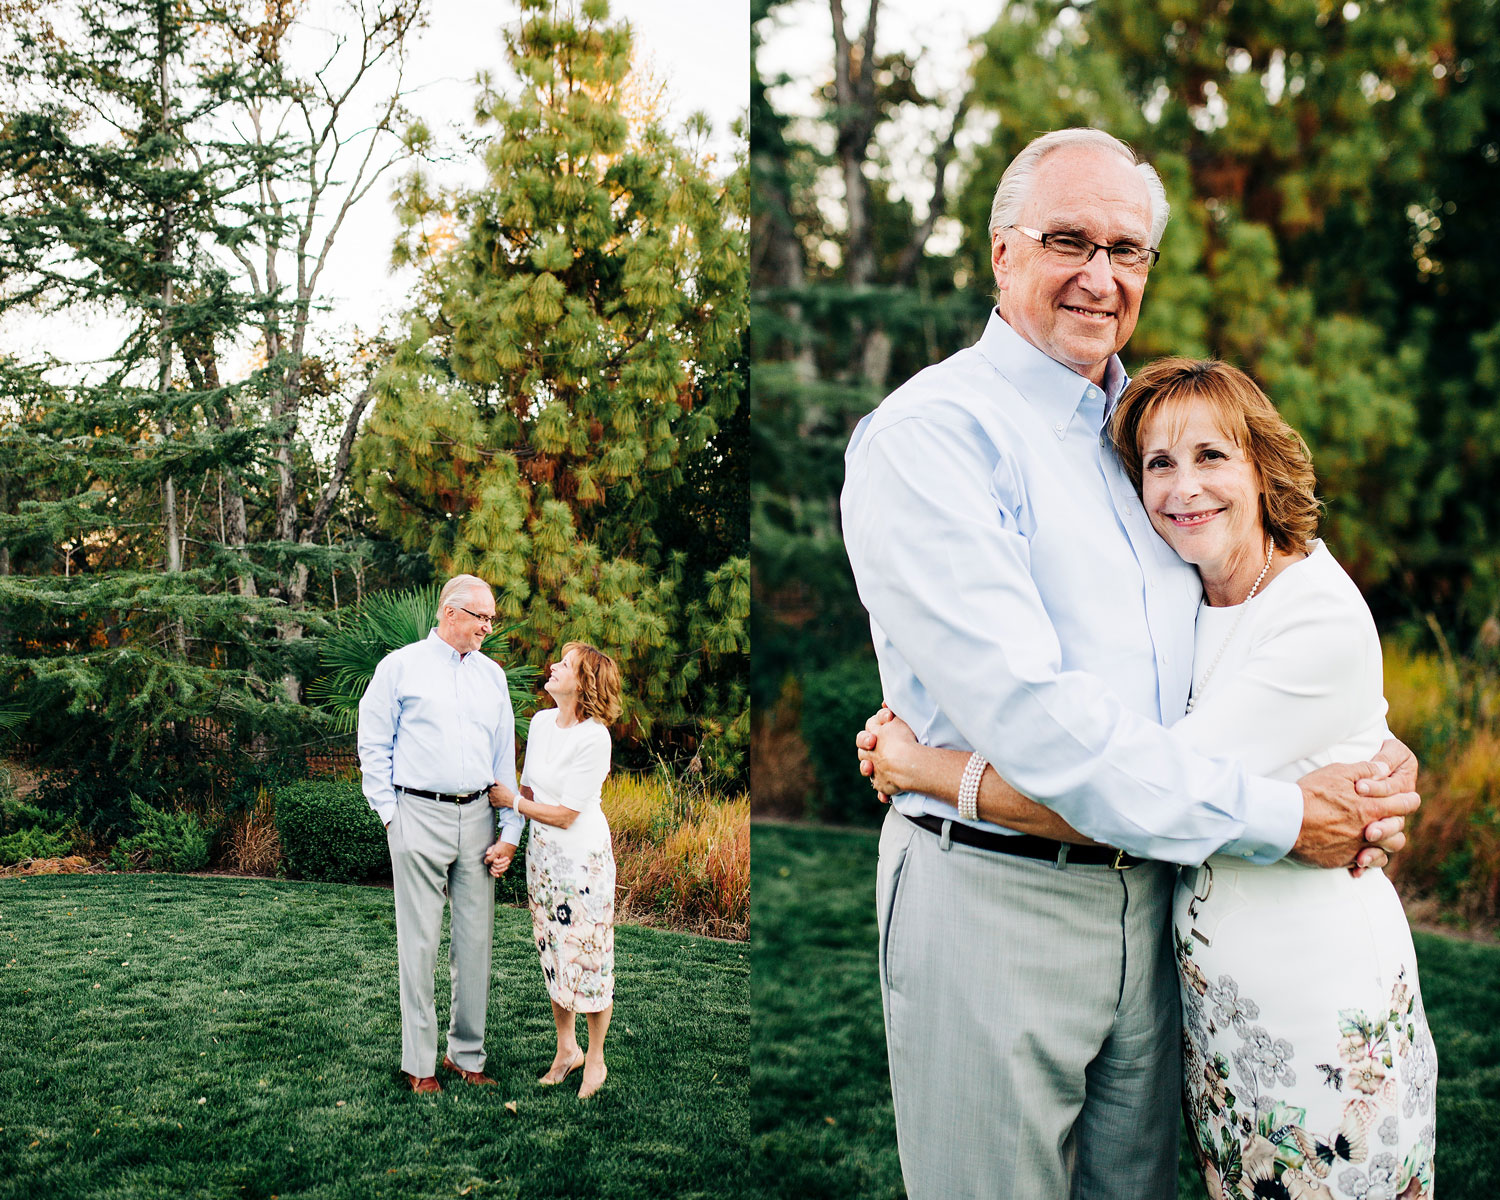 A husband and wife embrace during their extended family photo session with Amy Wright Photography based out of Sacramento, Rocklin, and Roseville, California.